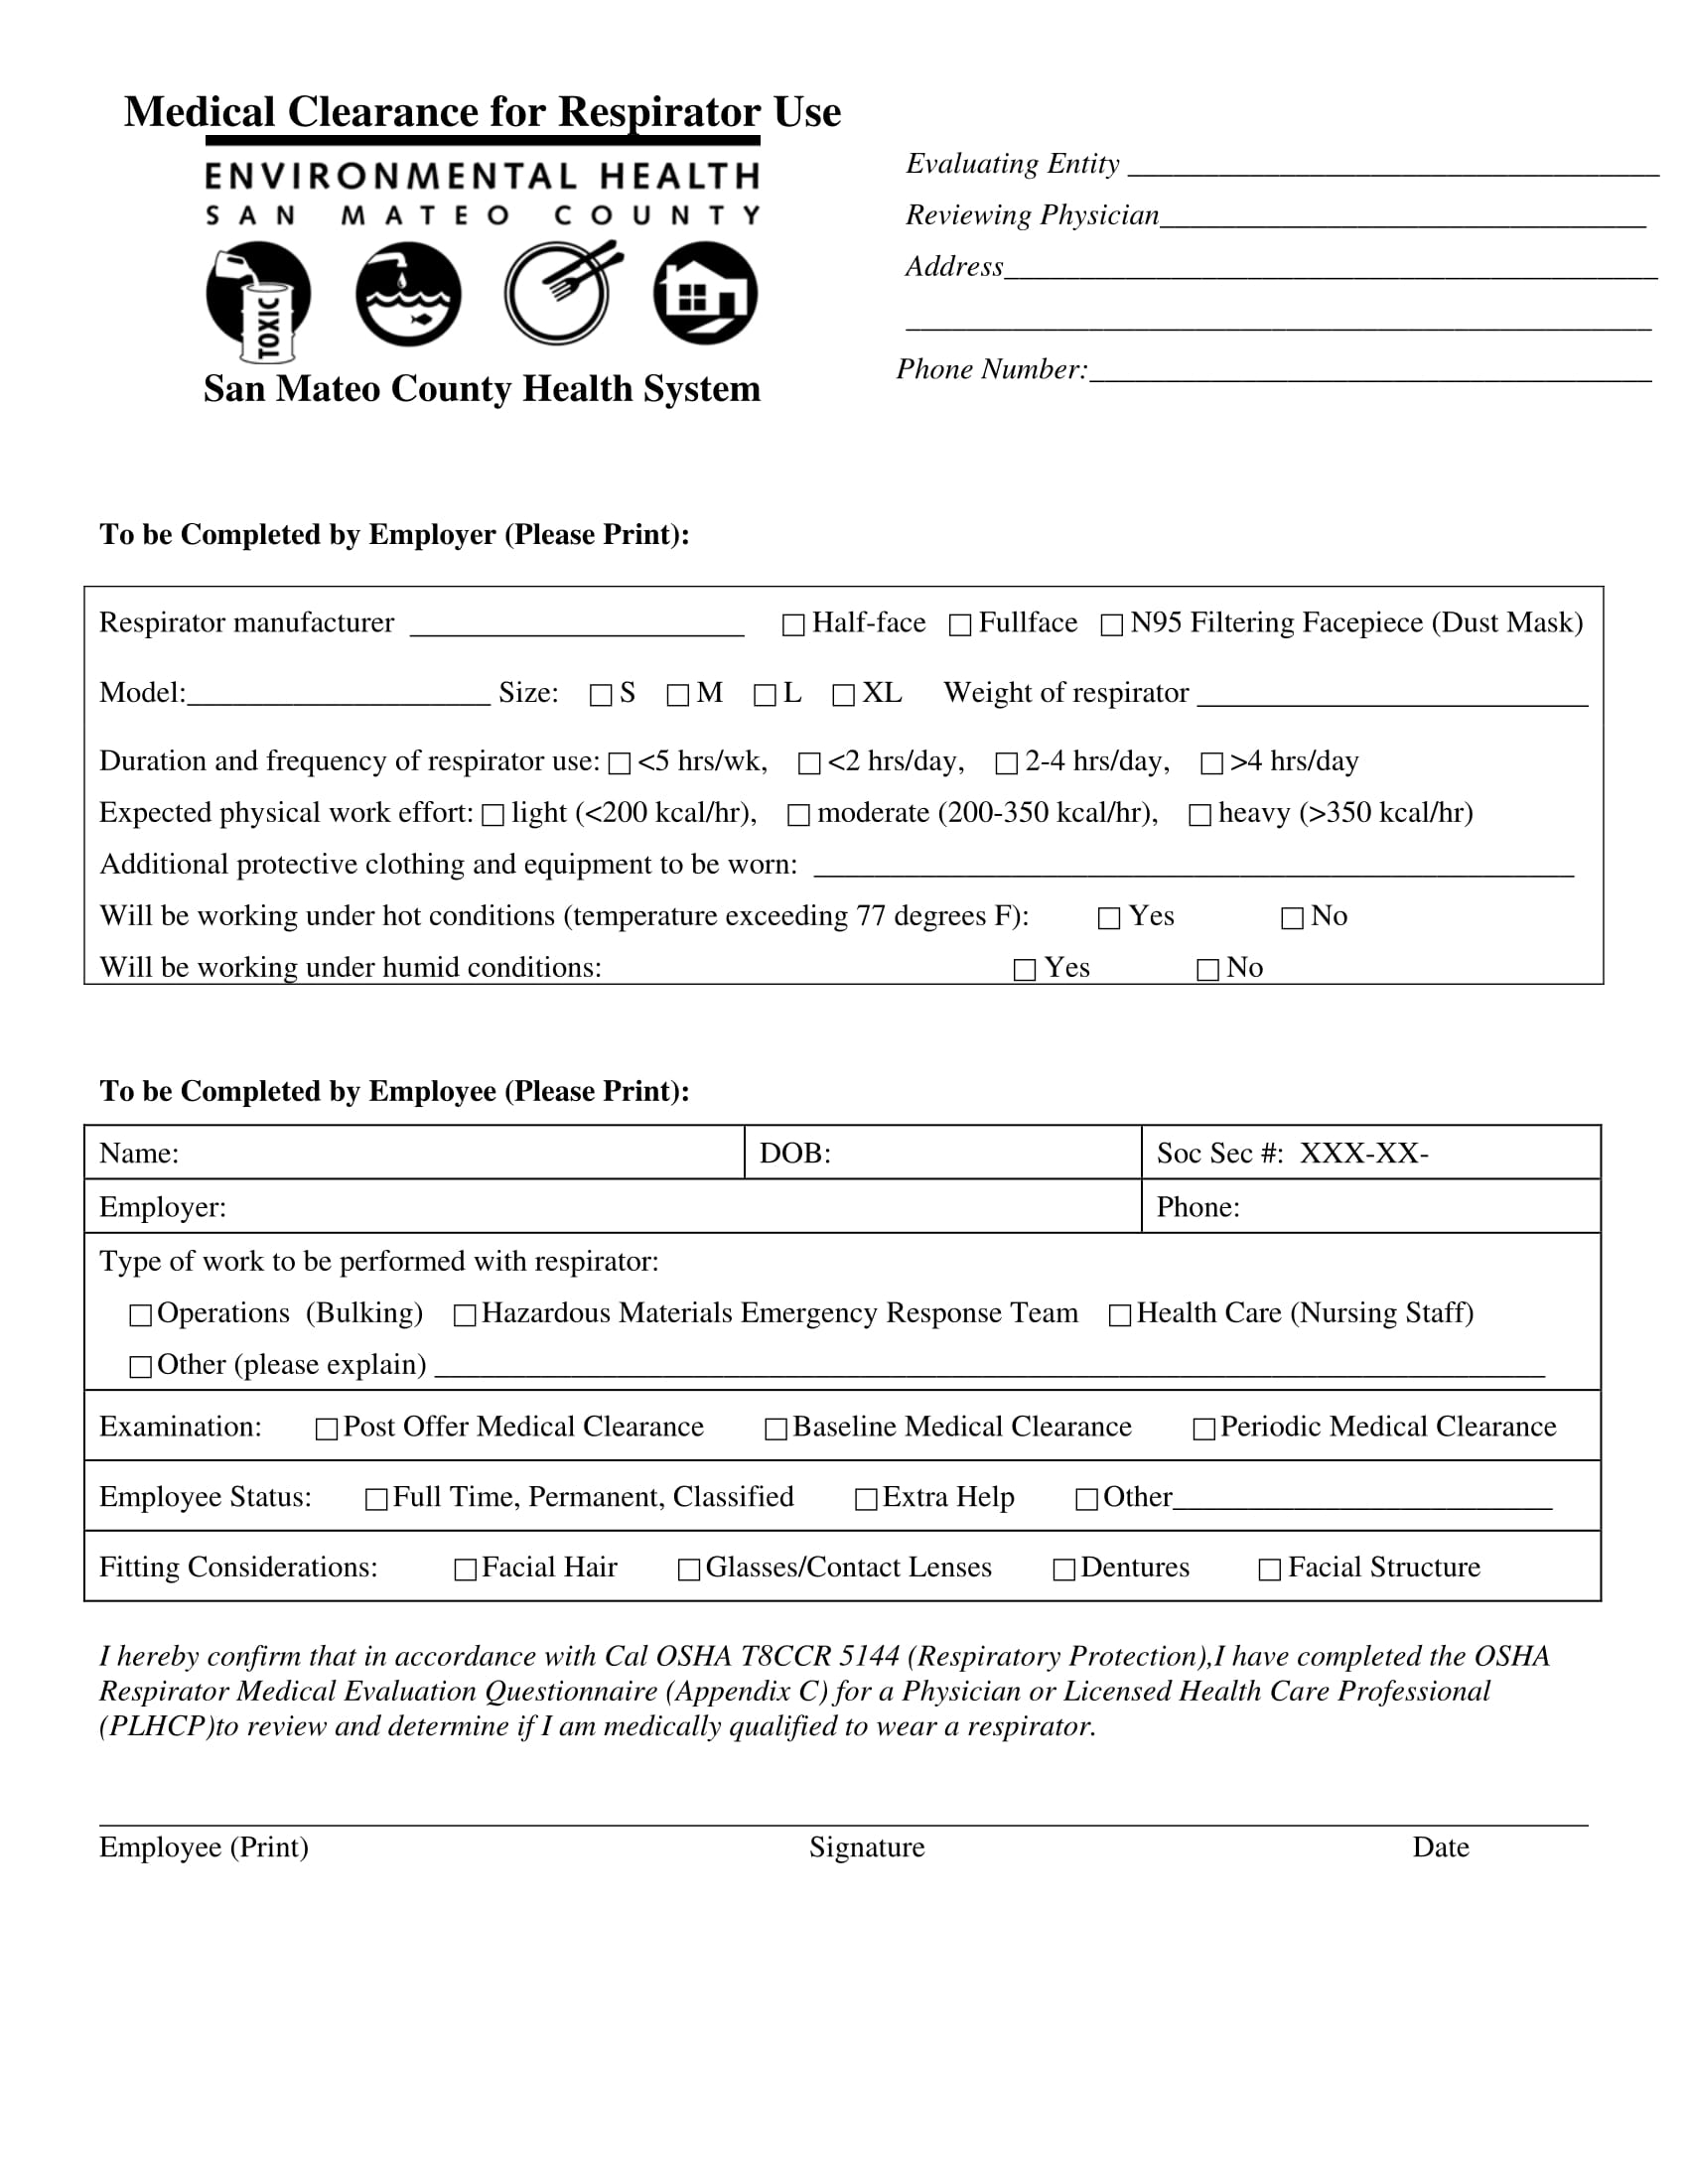 respirator use medical clearance form 1